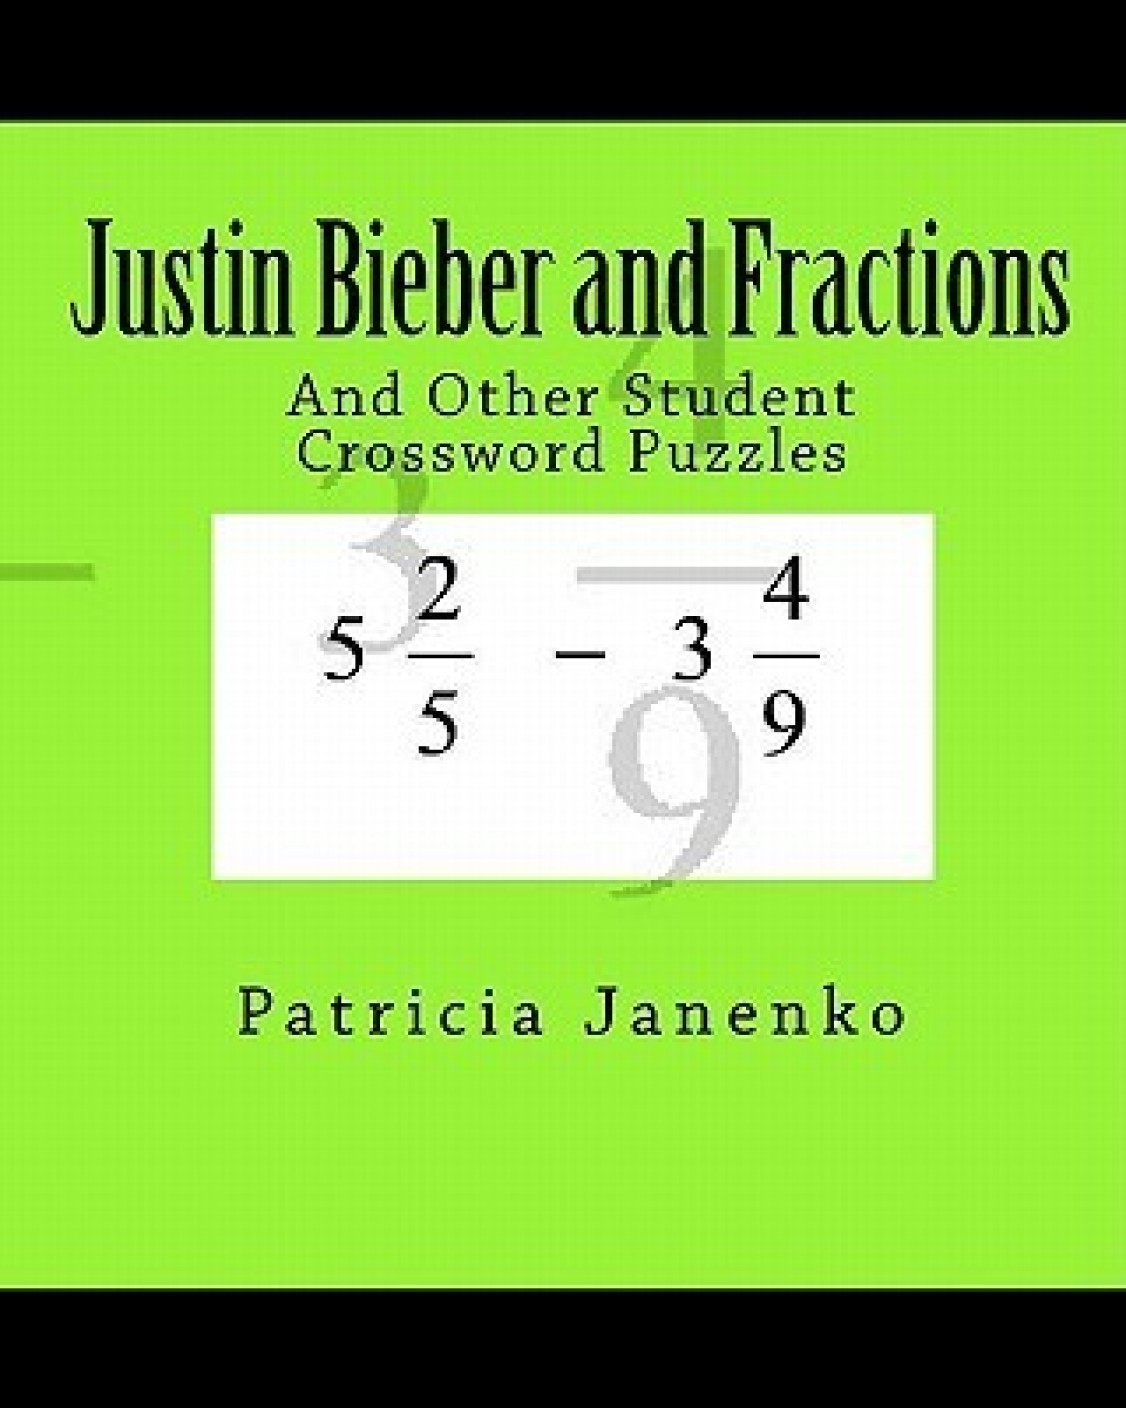 Justin Bieber and Fractions and Other Student Crossword Puzzles